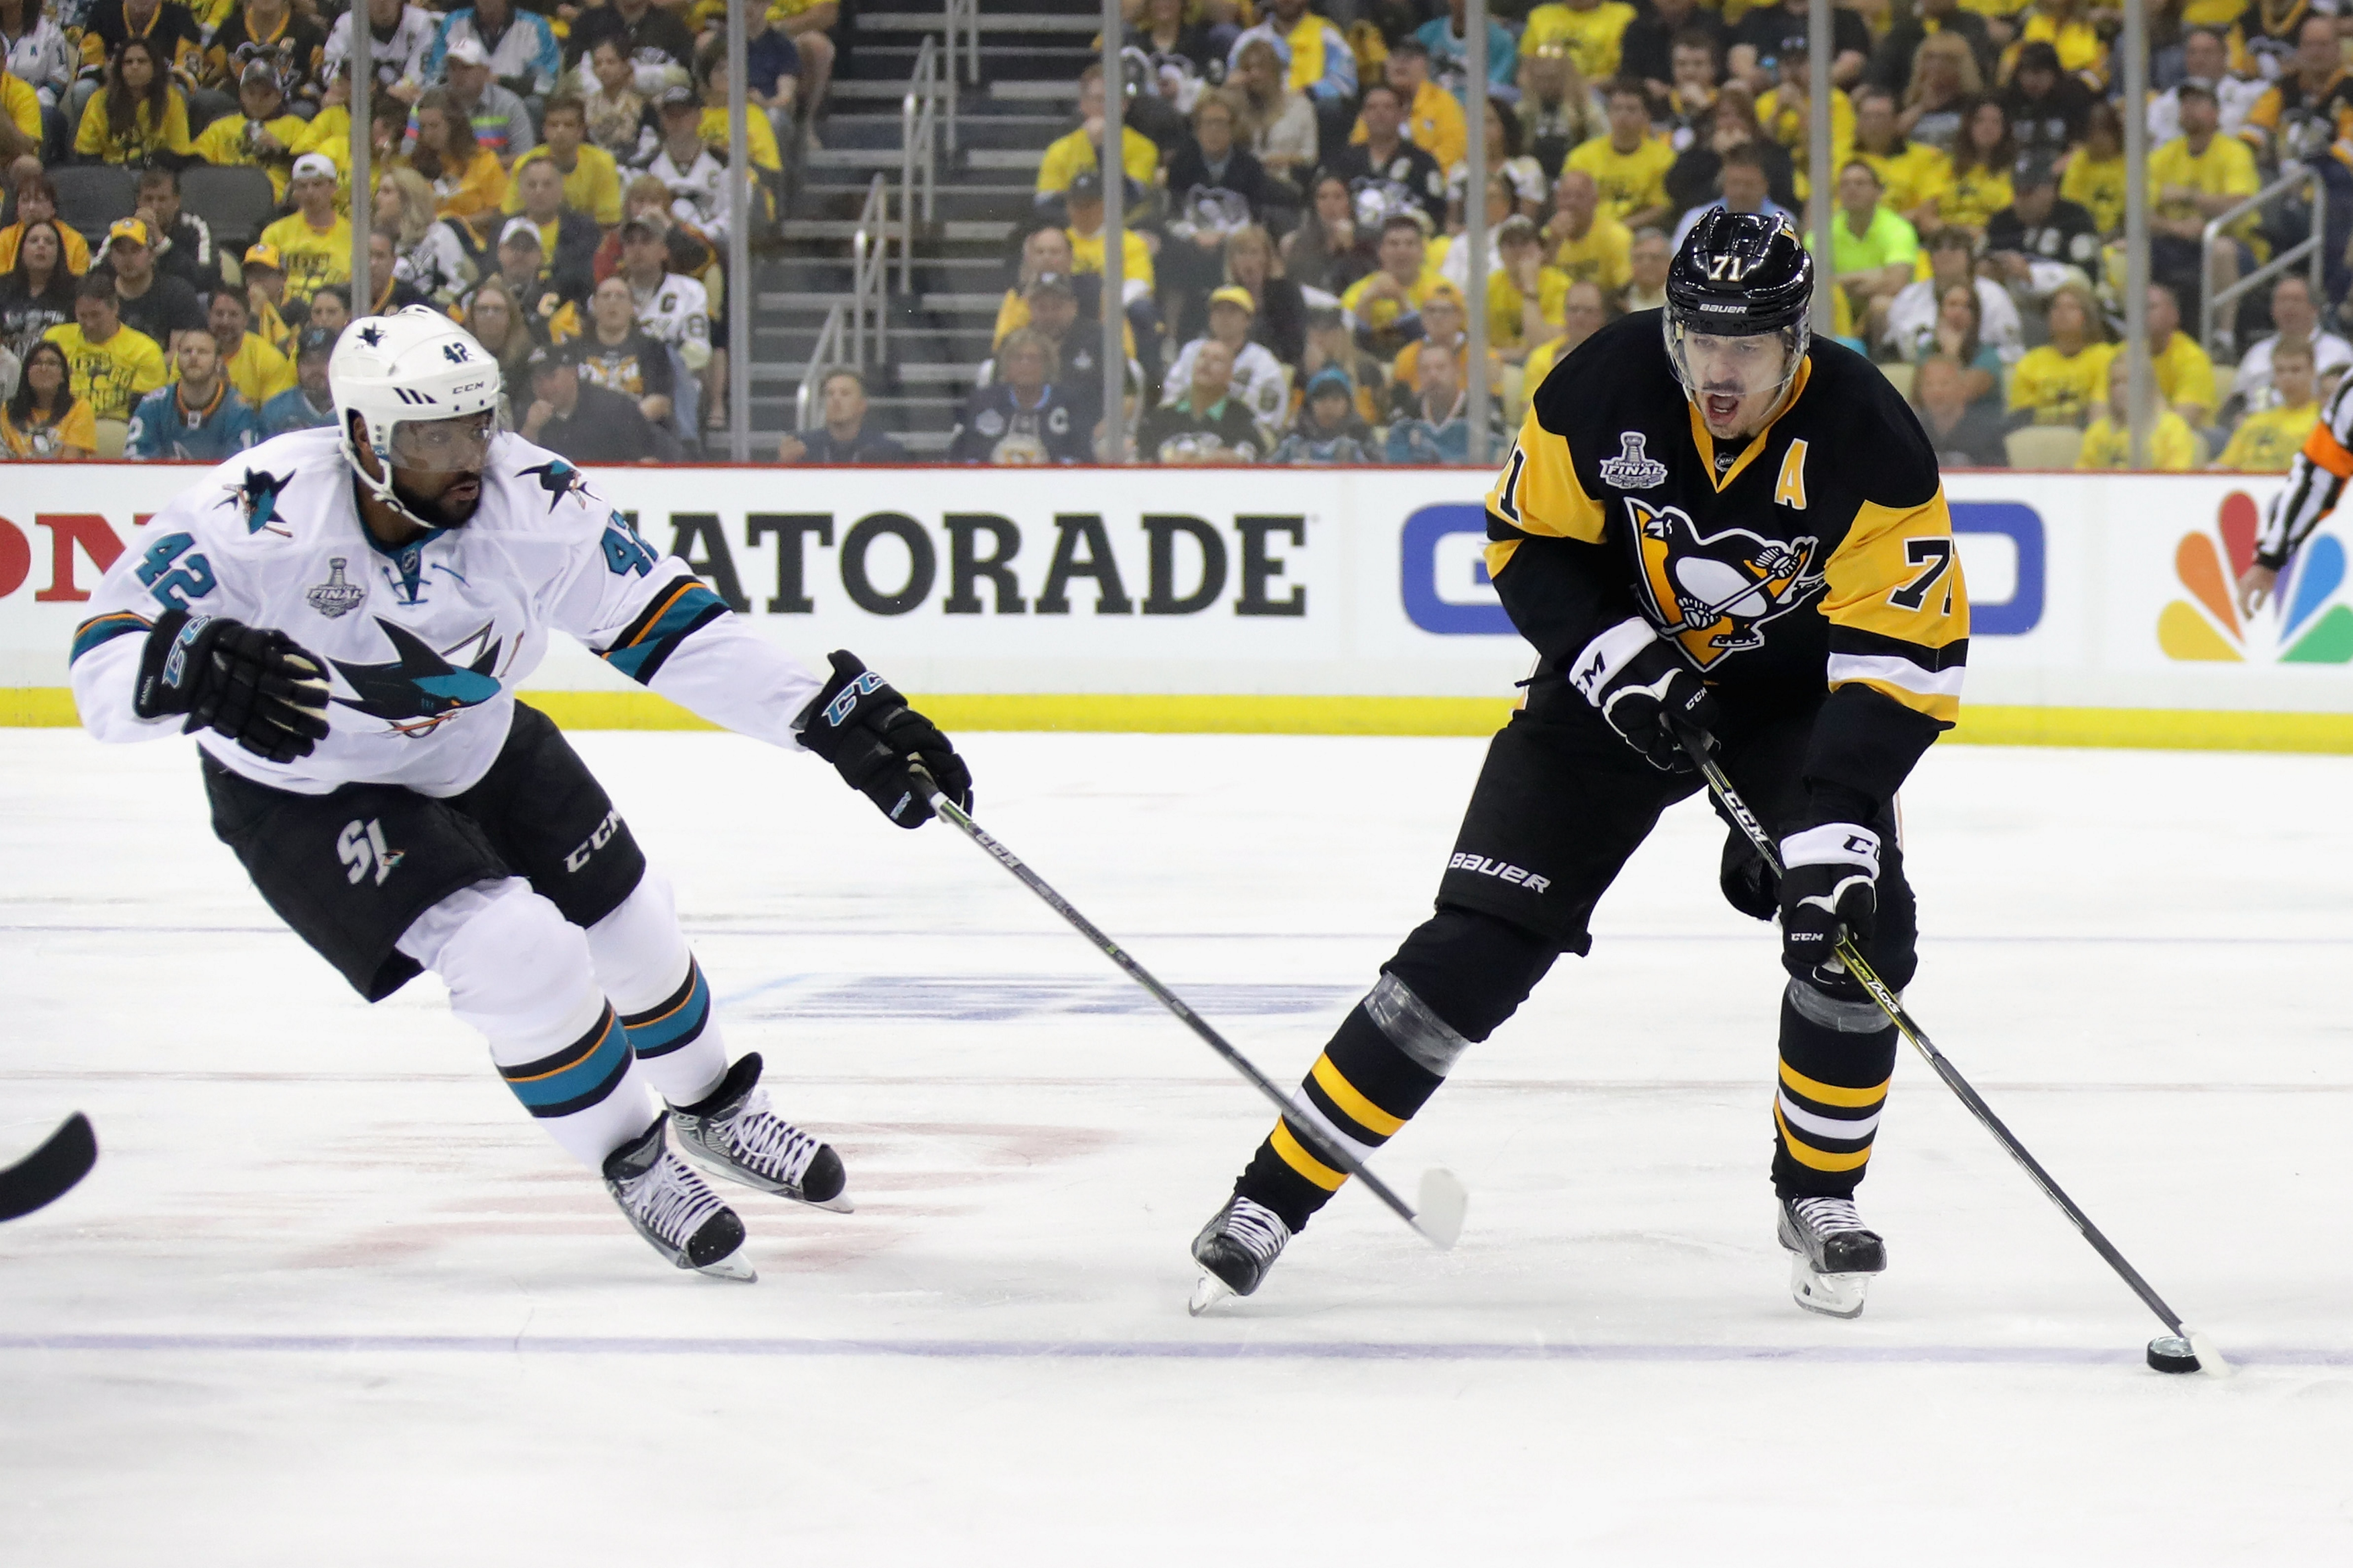 Evgeni Malkin of the Penguins carries the puck into the San Jose zone against the Sharks' Joel Ward in the first period of Monday night's game in Pittsburgh.